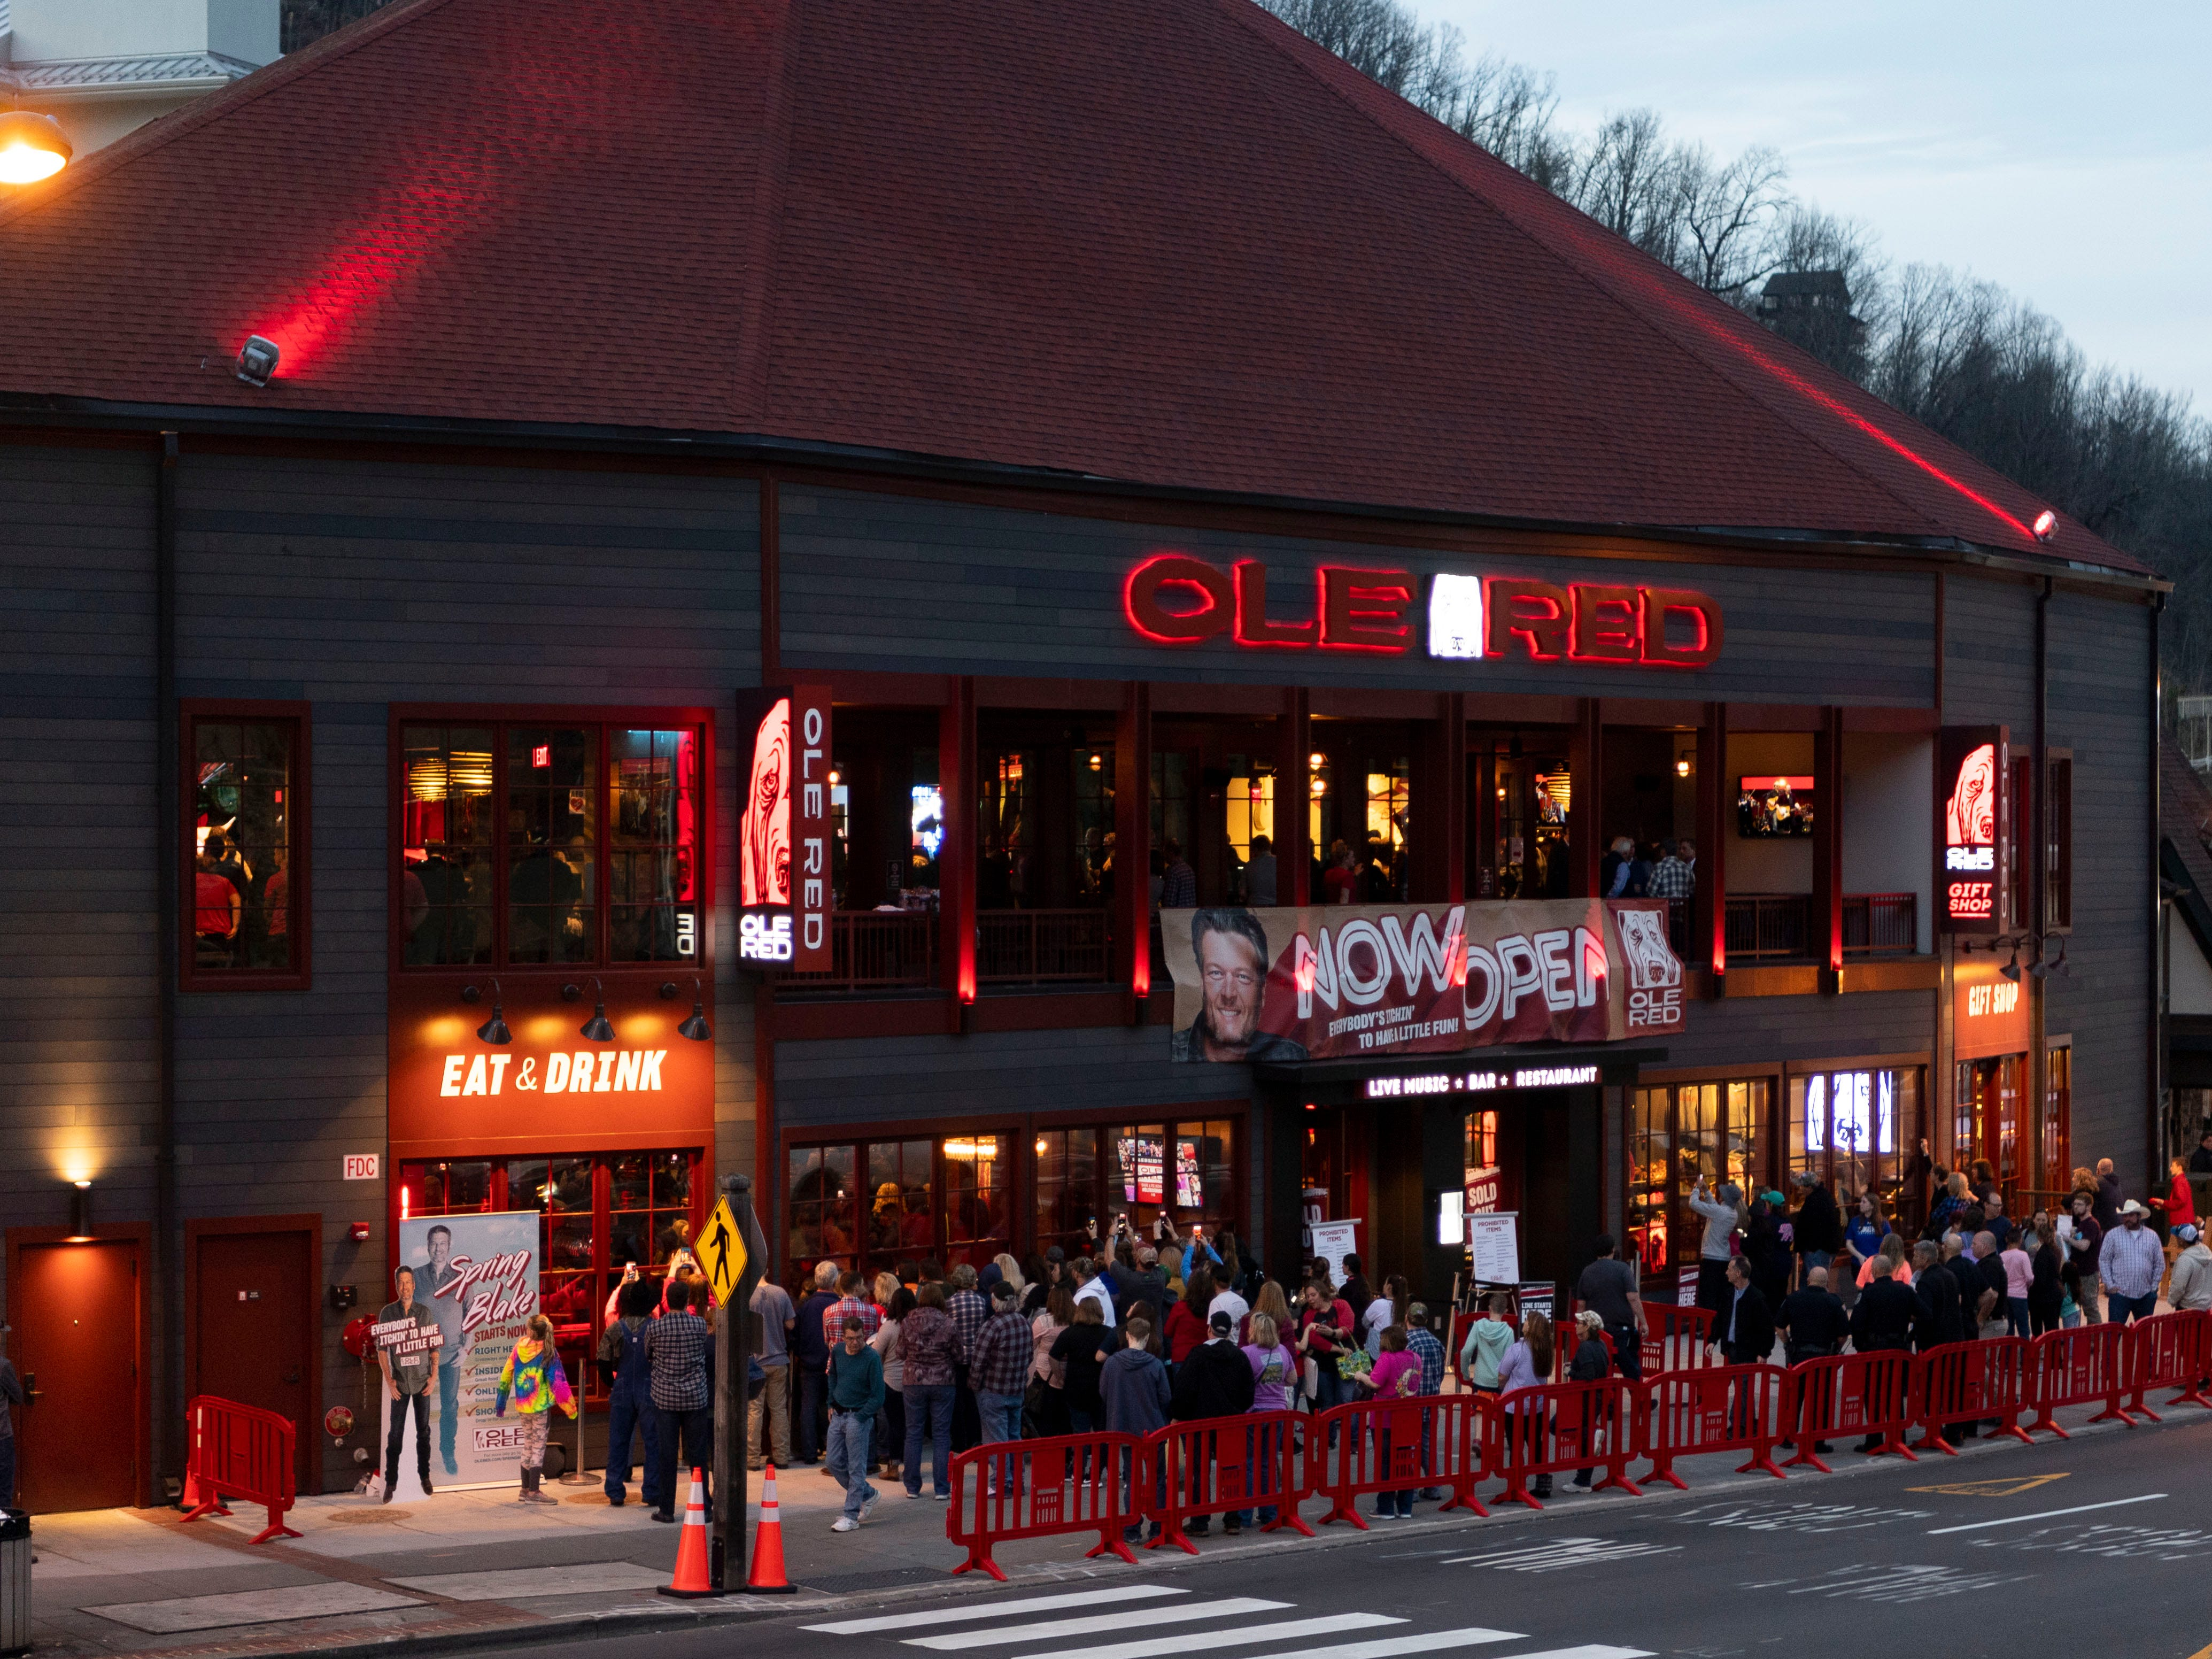 A crowd gathers outside Ole Red Gatlinburg to watch Blake Shelton performing inside the restaurant and music venue on Wednesday, March 13, 2019.